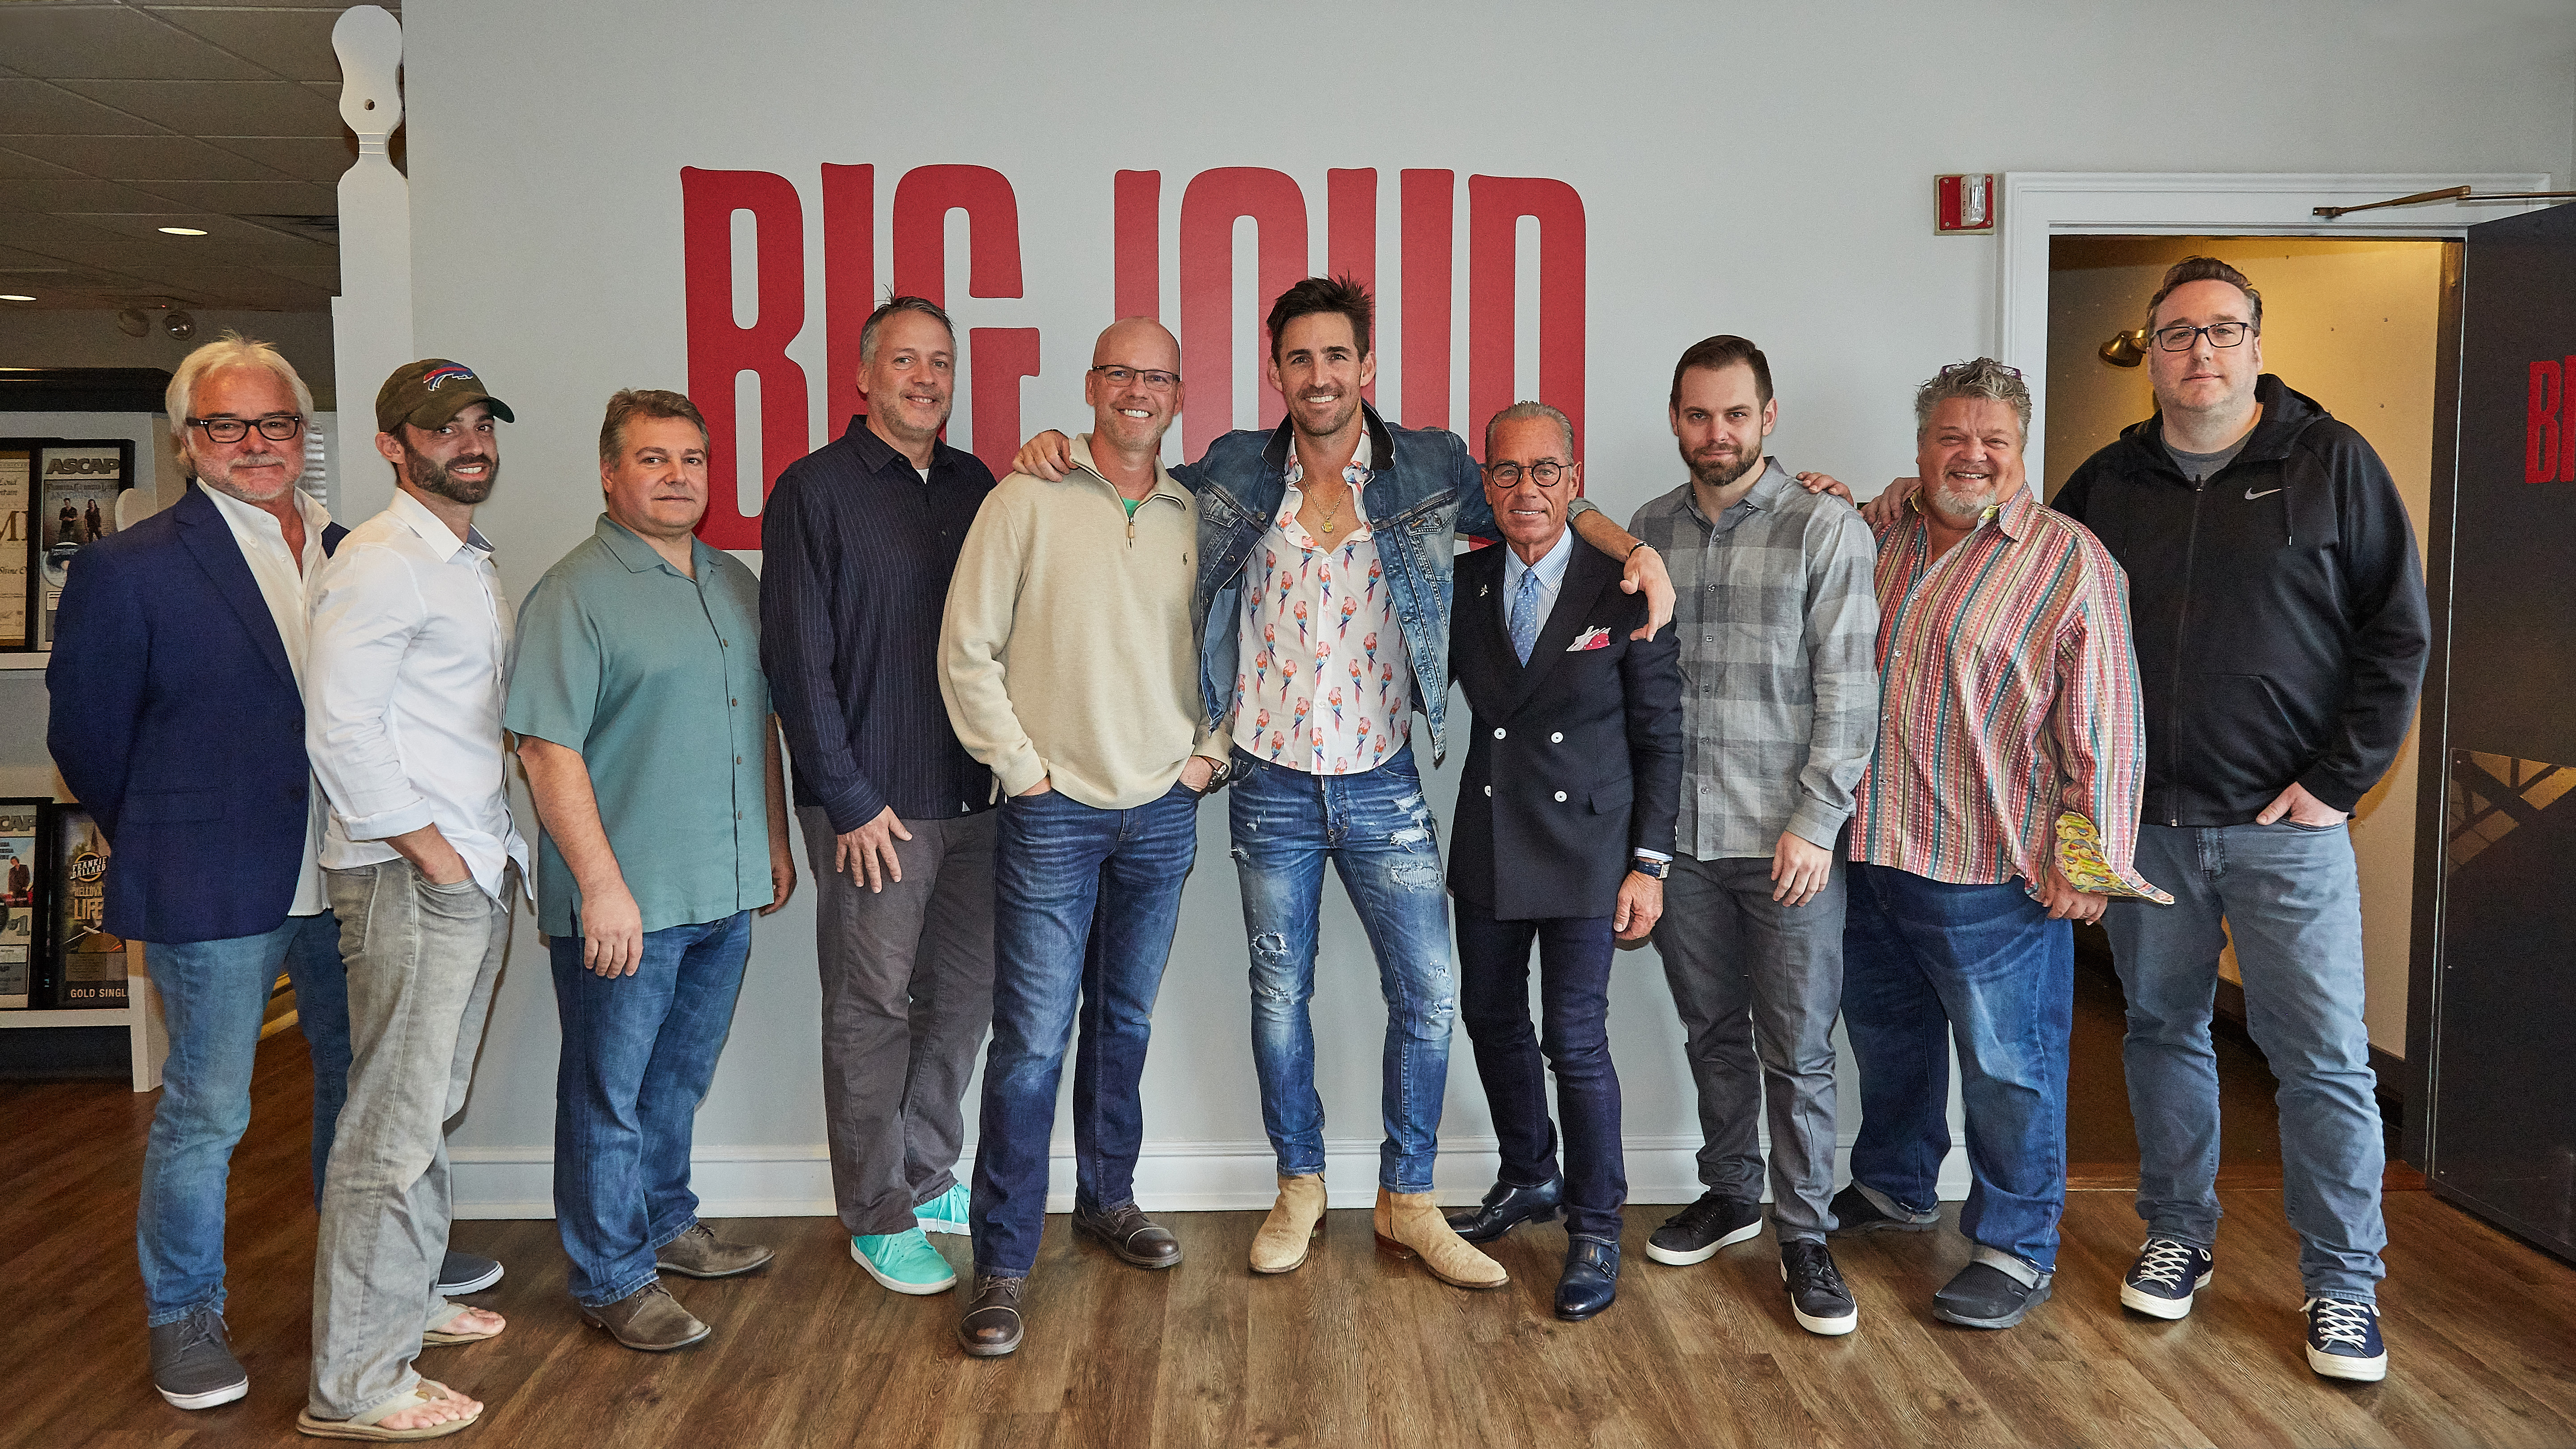 Jake Owen signs with Big Loud Records